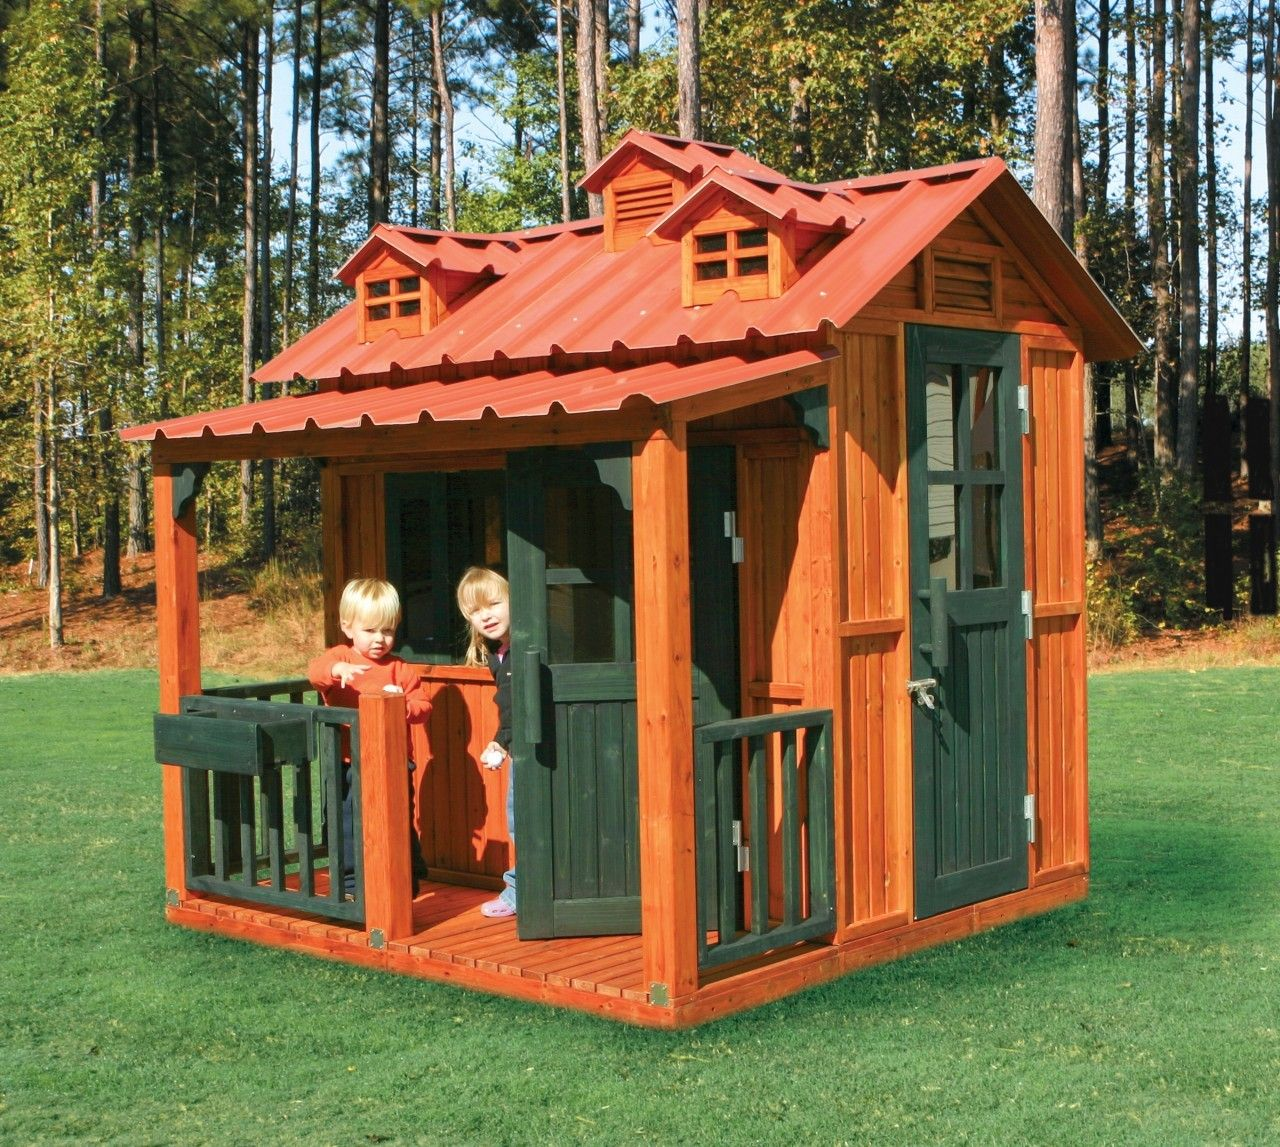 Playhouse for kids outdoor playhouse for kids for Kids outdoor playhouse